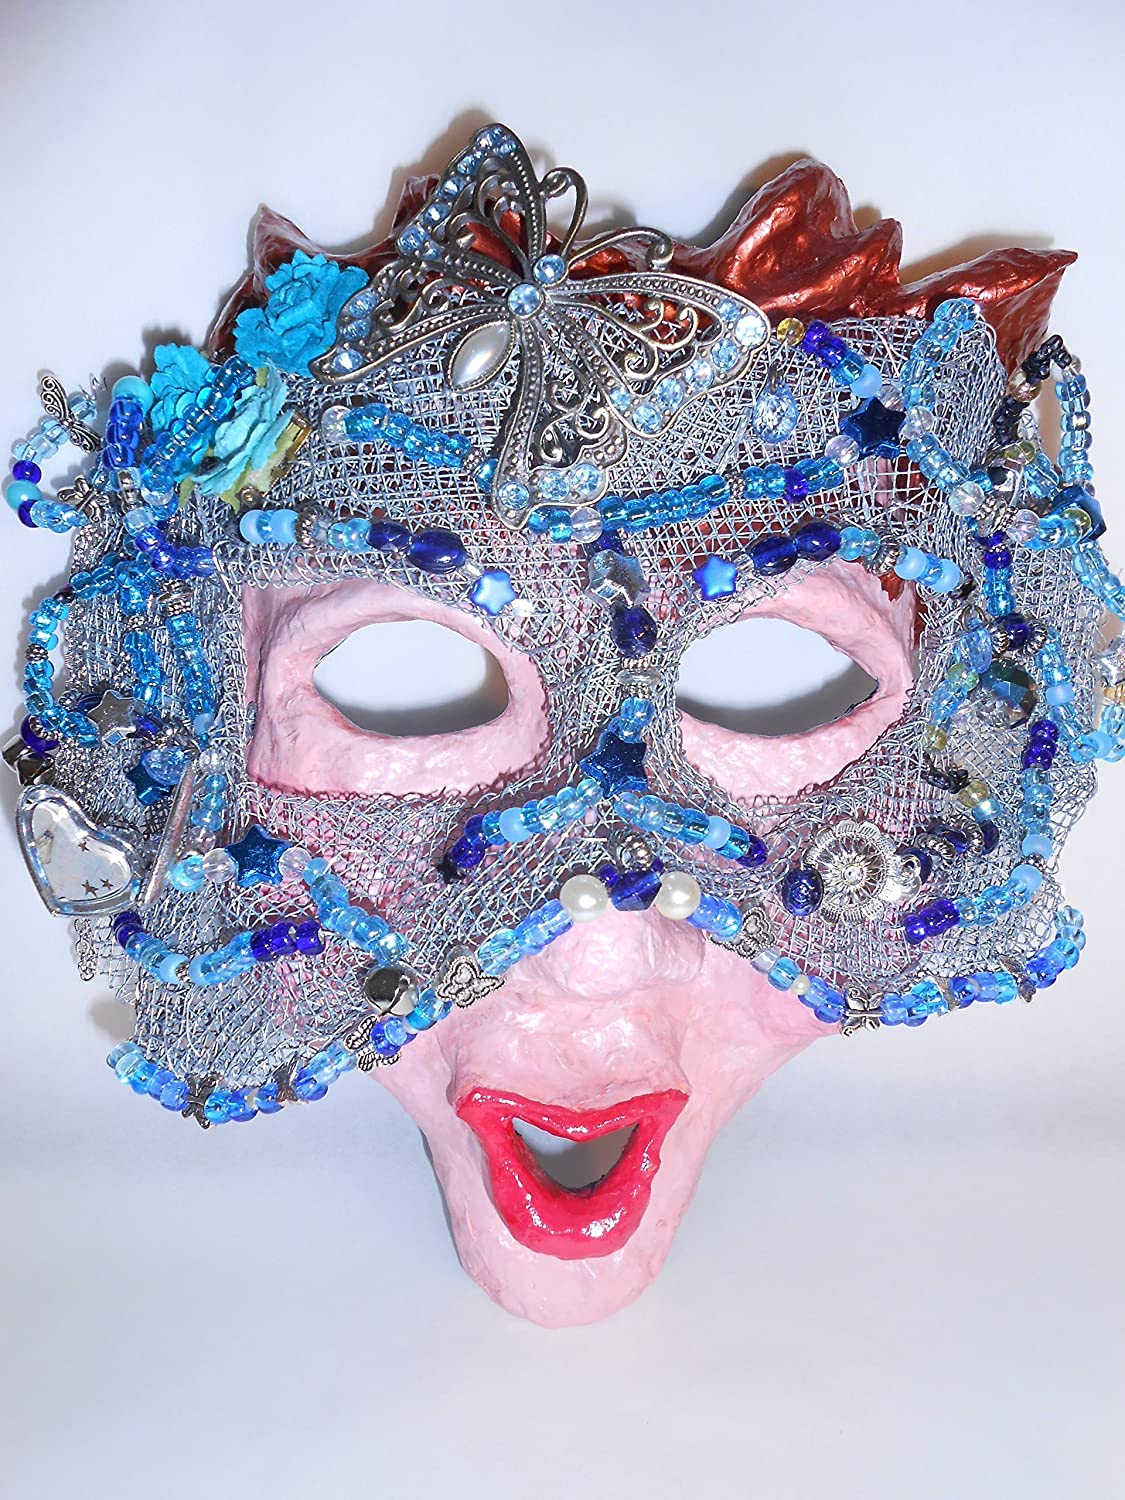 Butterfly in Blue - Full Sized Mixed Media Mask Ready for Display